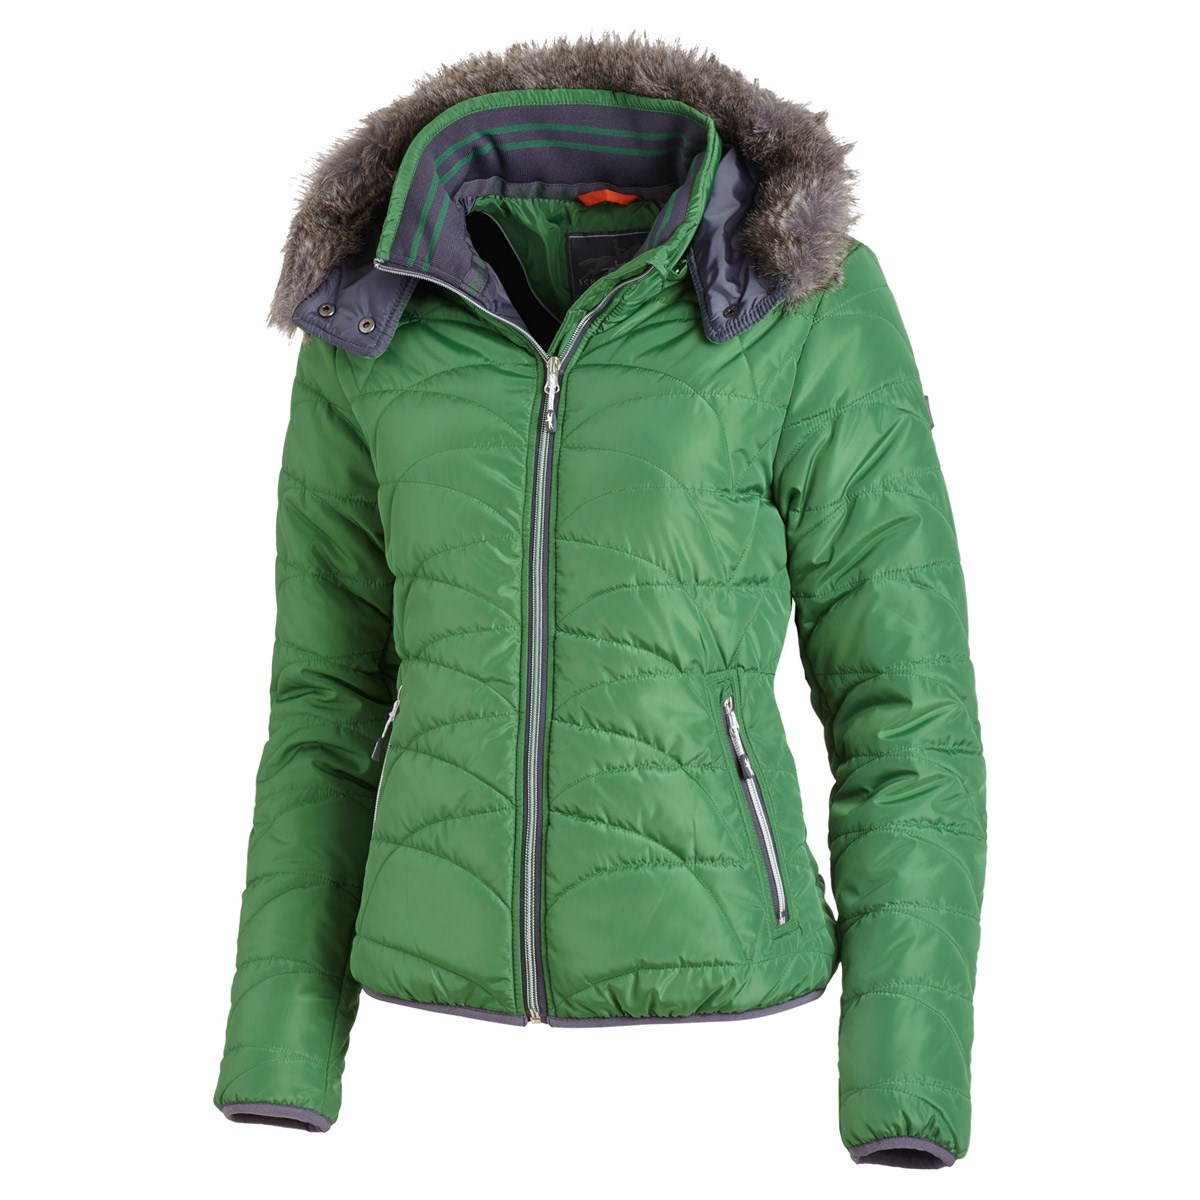 Schockemohle Sports Valerie Style Ladies Jacket - Mossy Green - Redpost  Equestrian 173584254a14